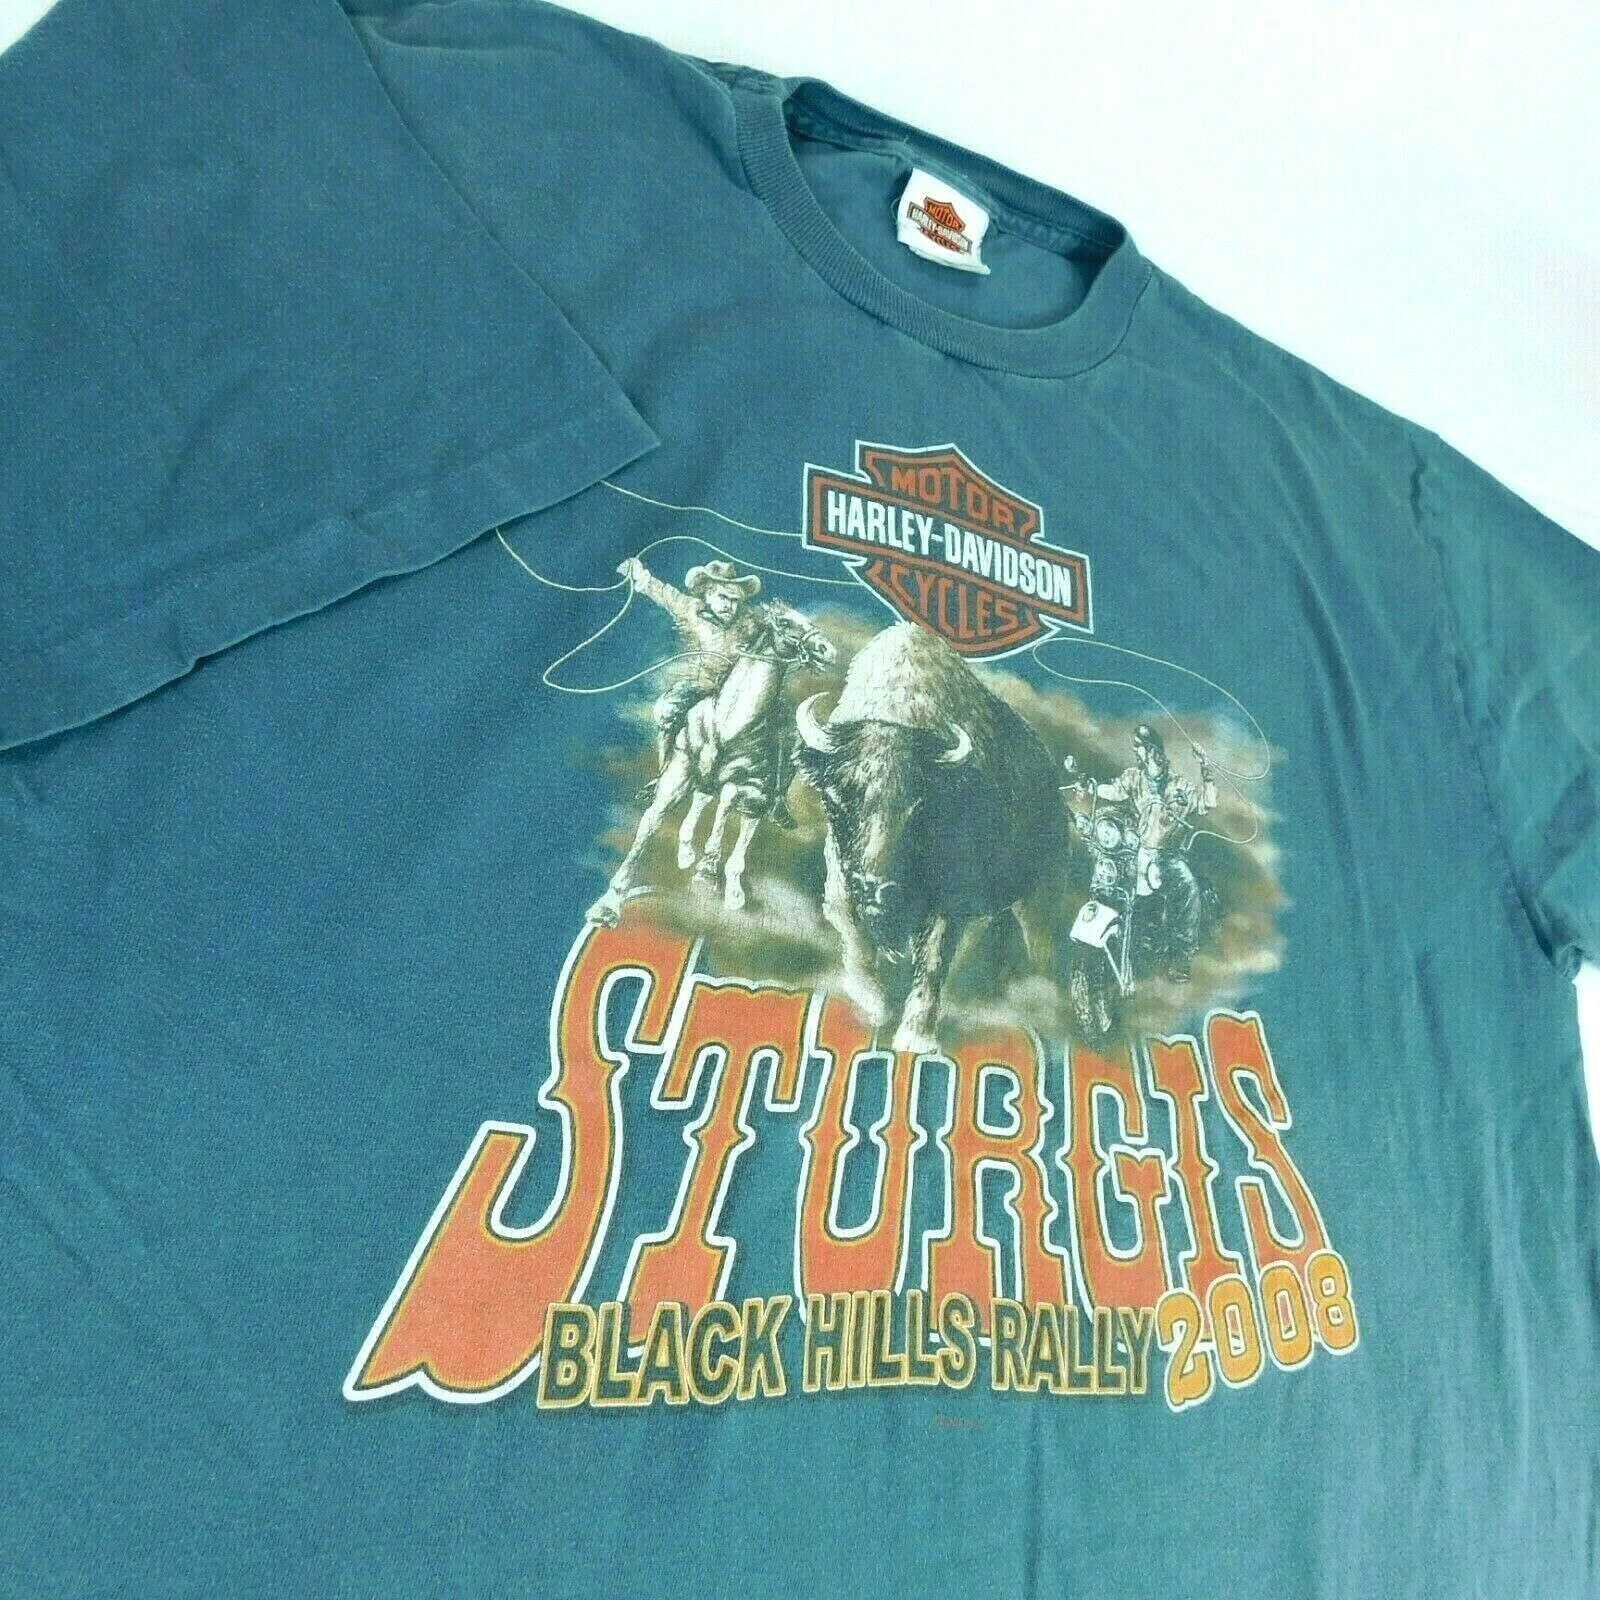 Harley Davidson Sturgis Black Hills Rally 2008 Buffalo Chip Blue T Shirt Sz XL